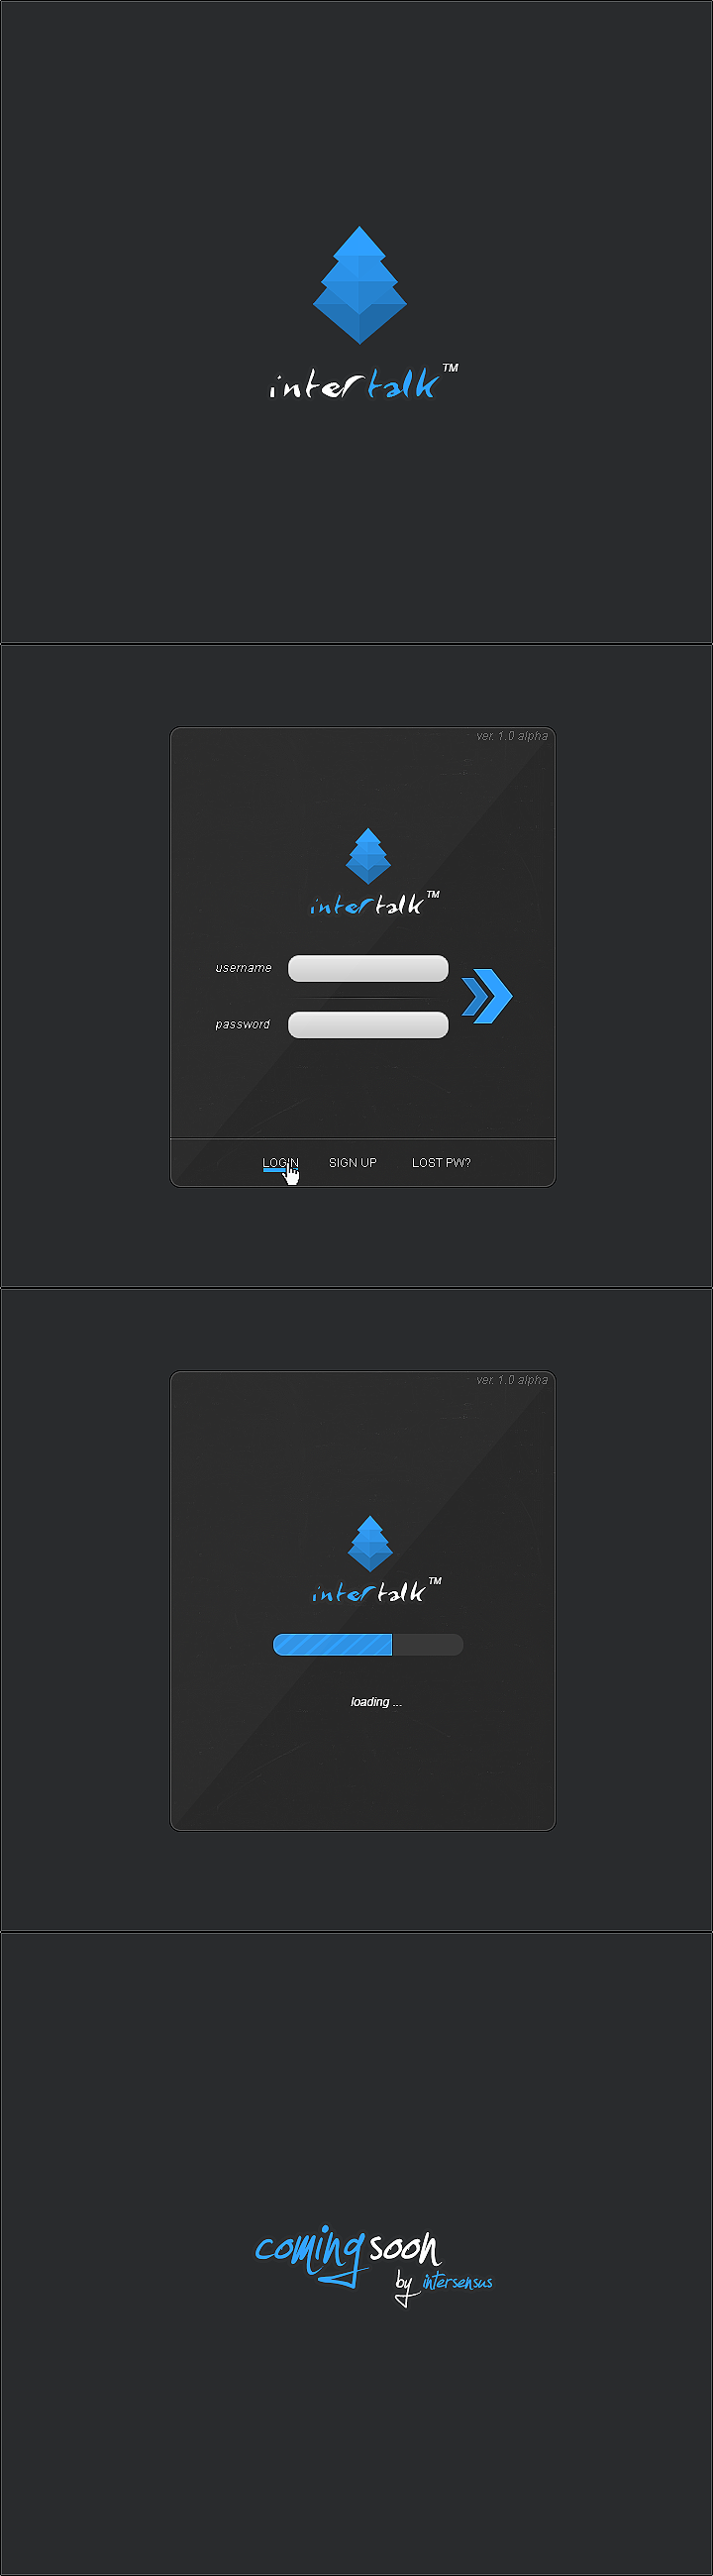 Intertalk Messenger by lpzdesign